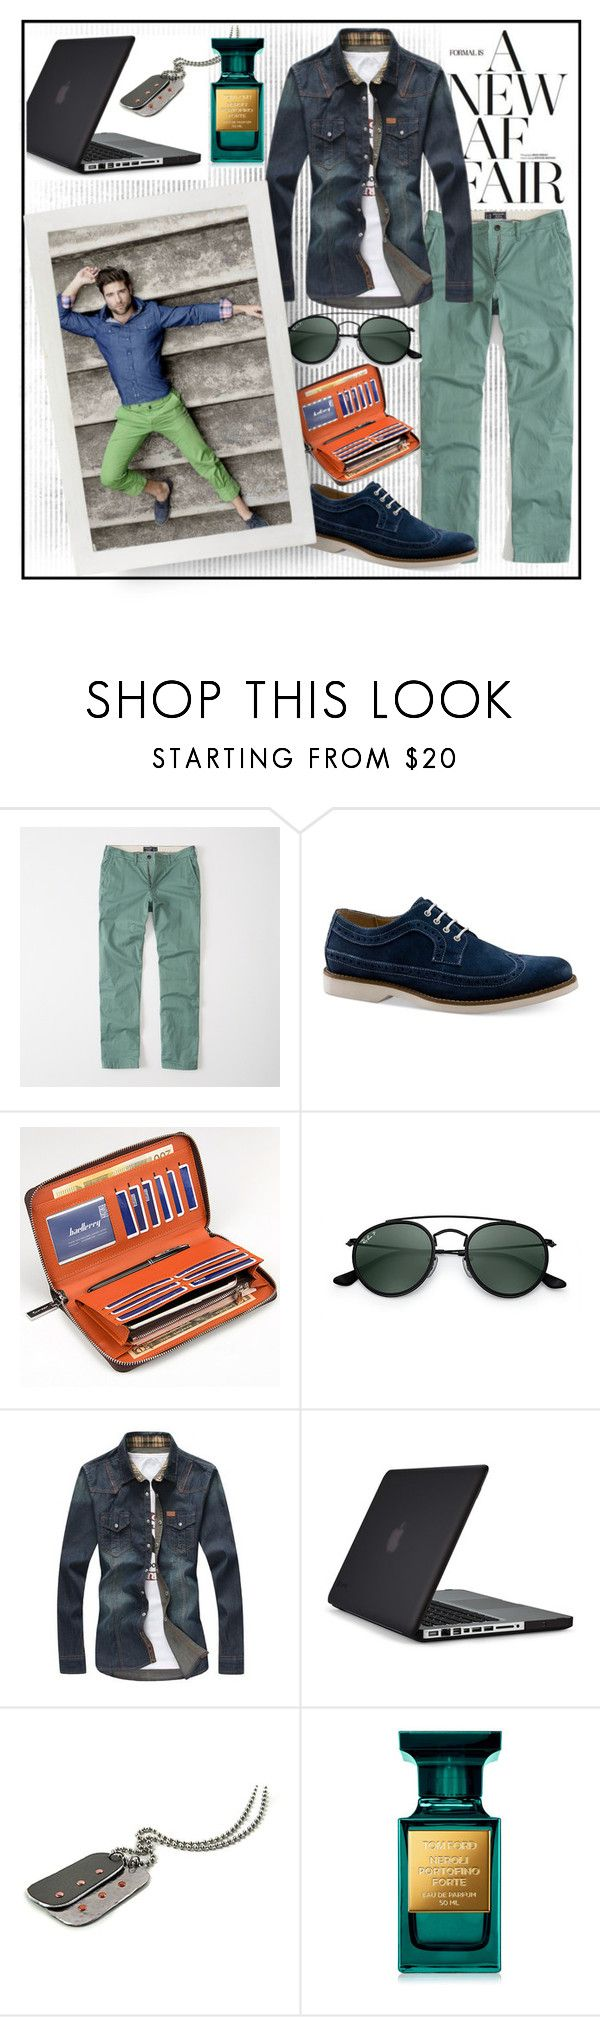 """""""A NEW AFFAIR!!!"""" by kskafida ❤ liked on Polyvore featuring Abercrombie & Fitch, G.H. Bass & Co., Ray-Ban, Speck, men's fashion and menswear"""